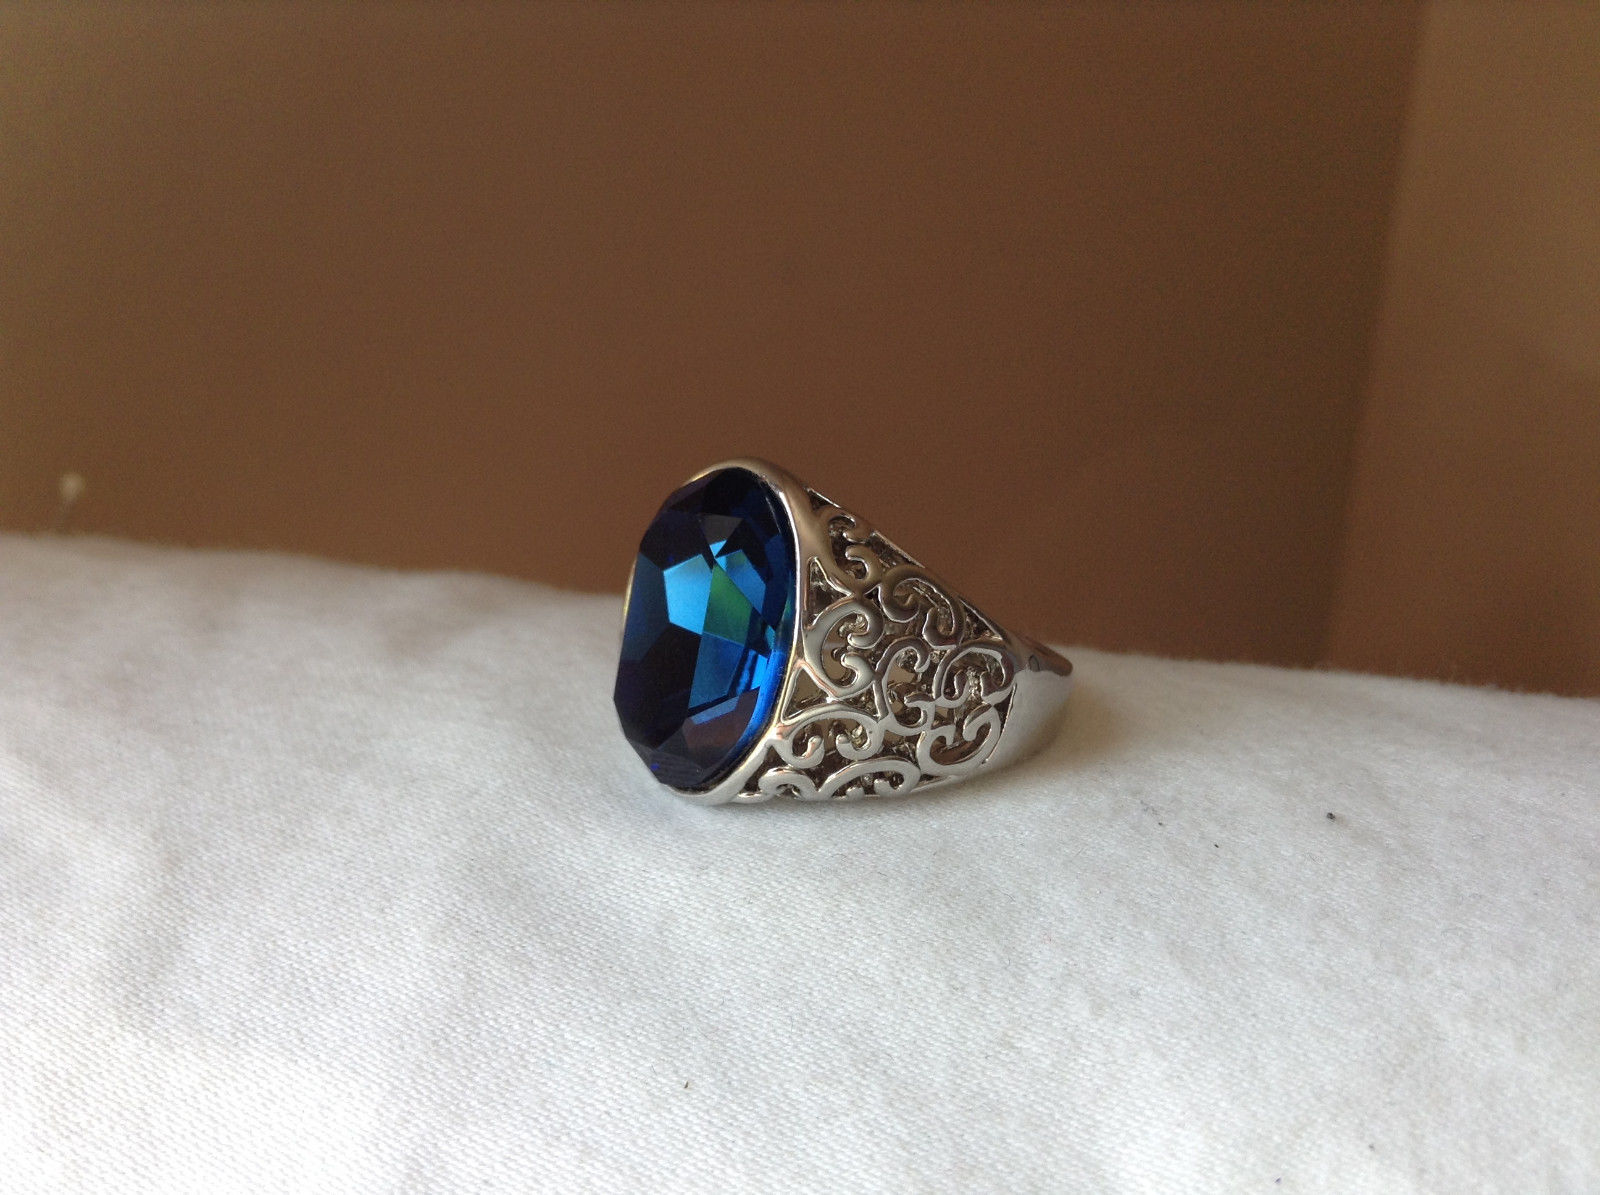 Deep Blue CZ Stone Swirl Design Stainless Stain Ring Size 9.5